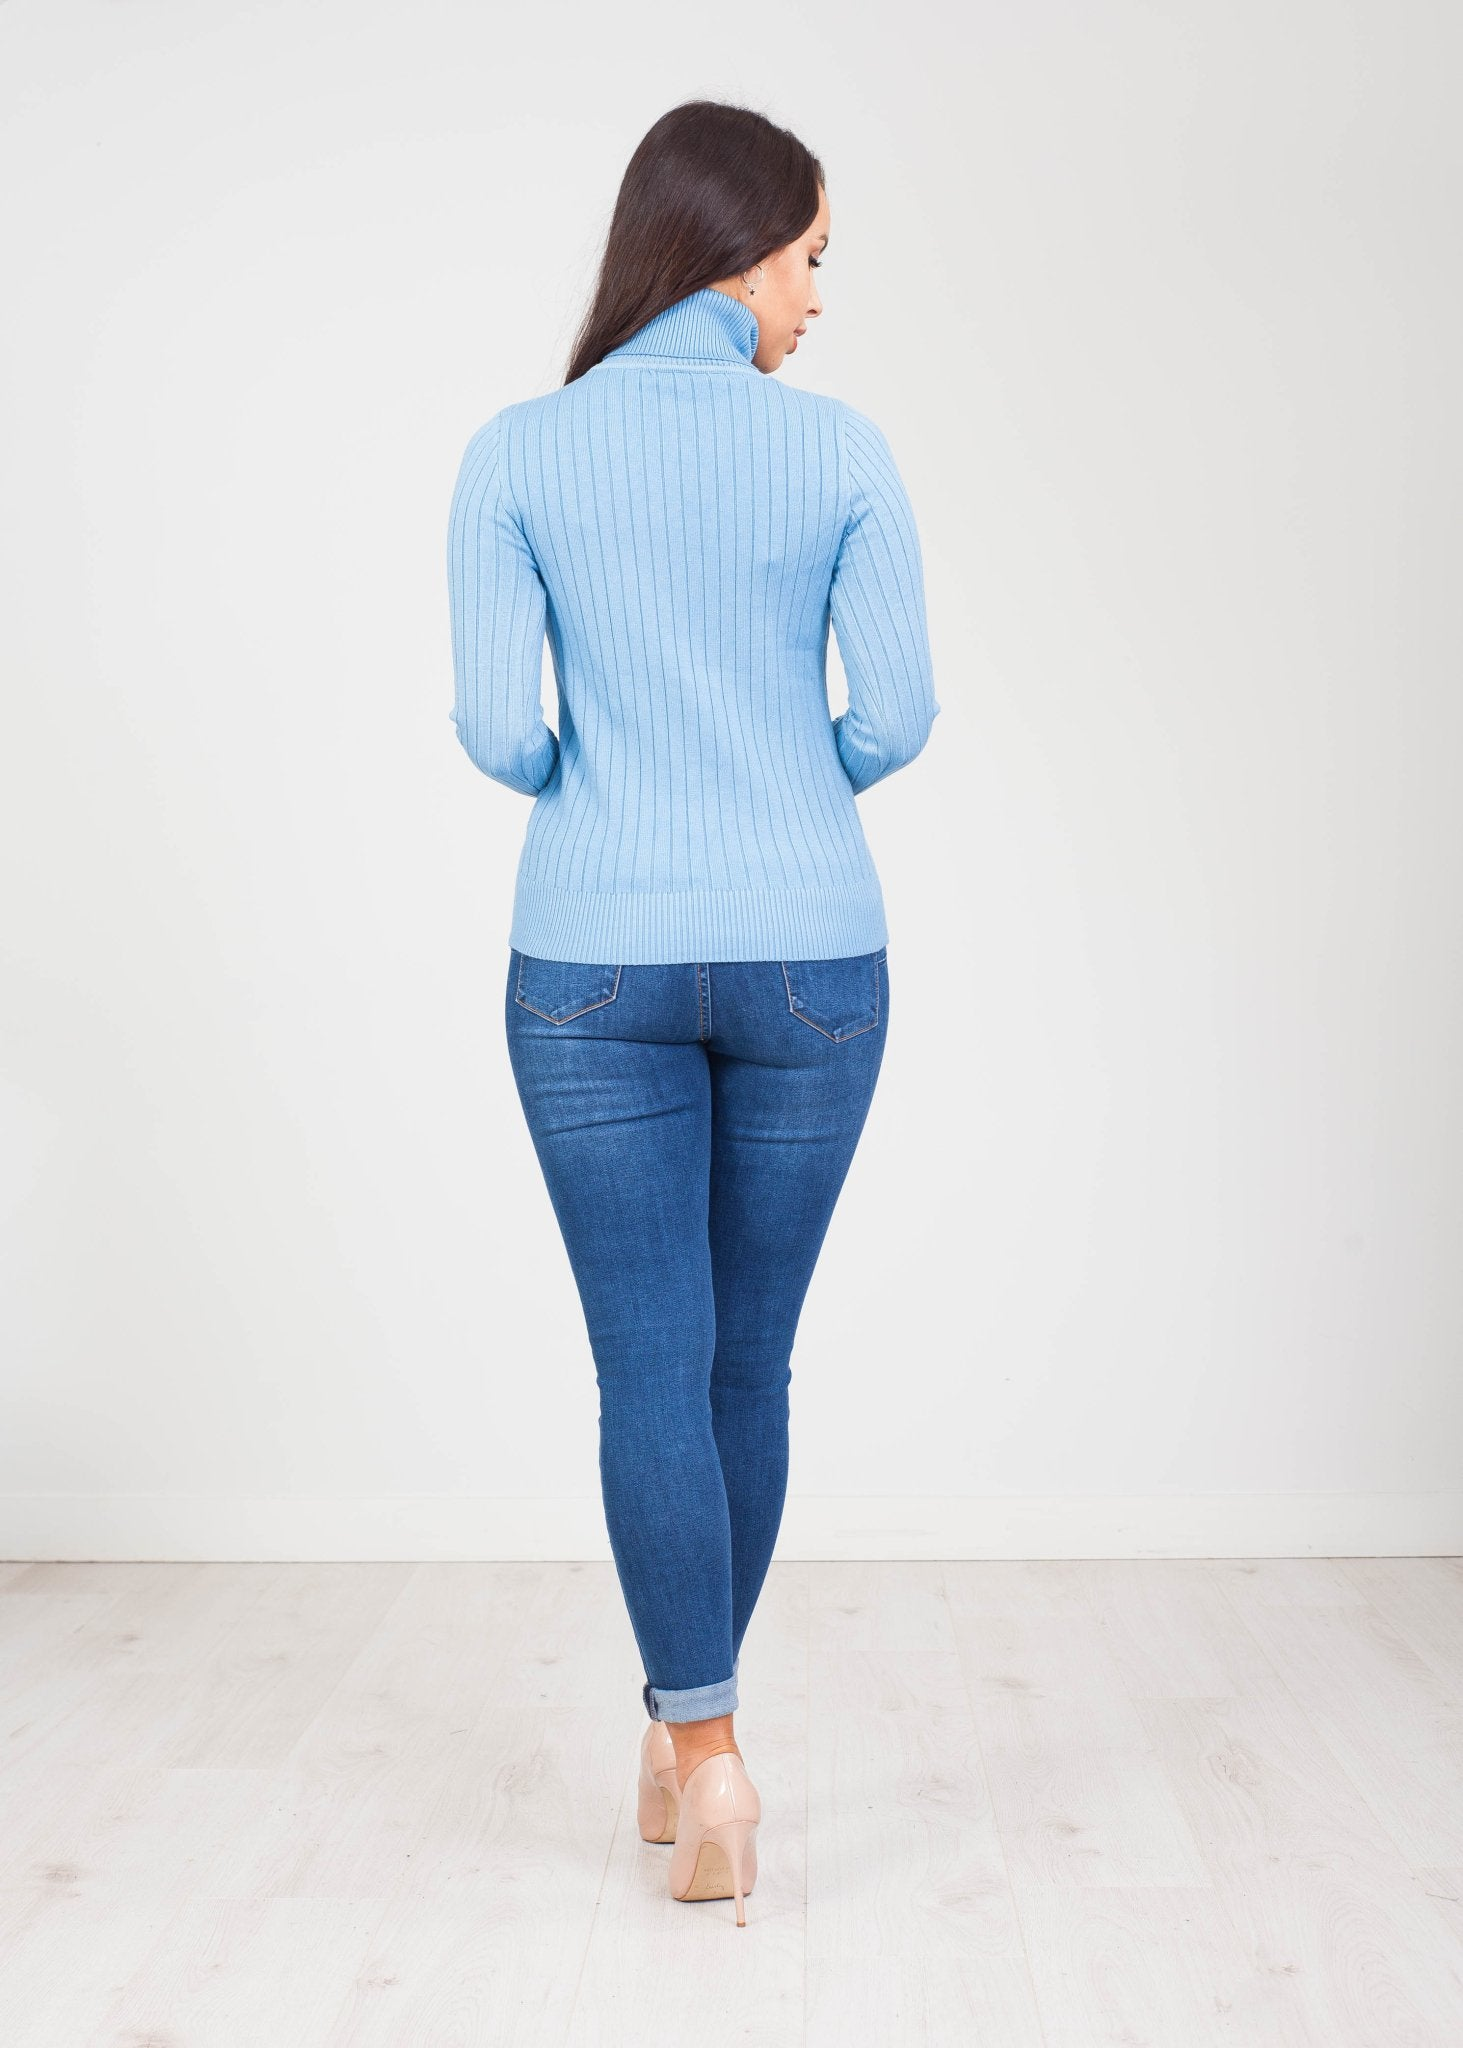 Priya Polo Neck with Buttons in Blue - The Walk in Wardrobe